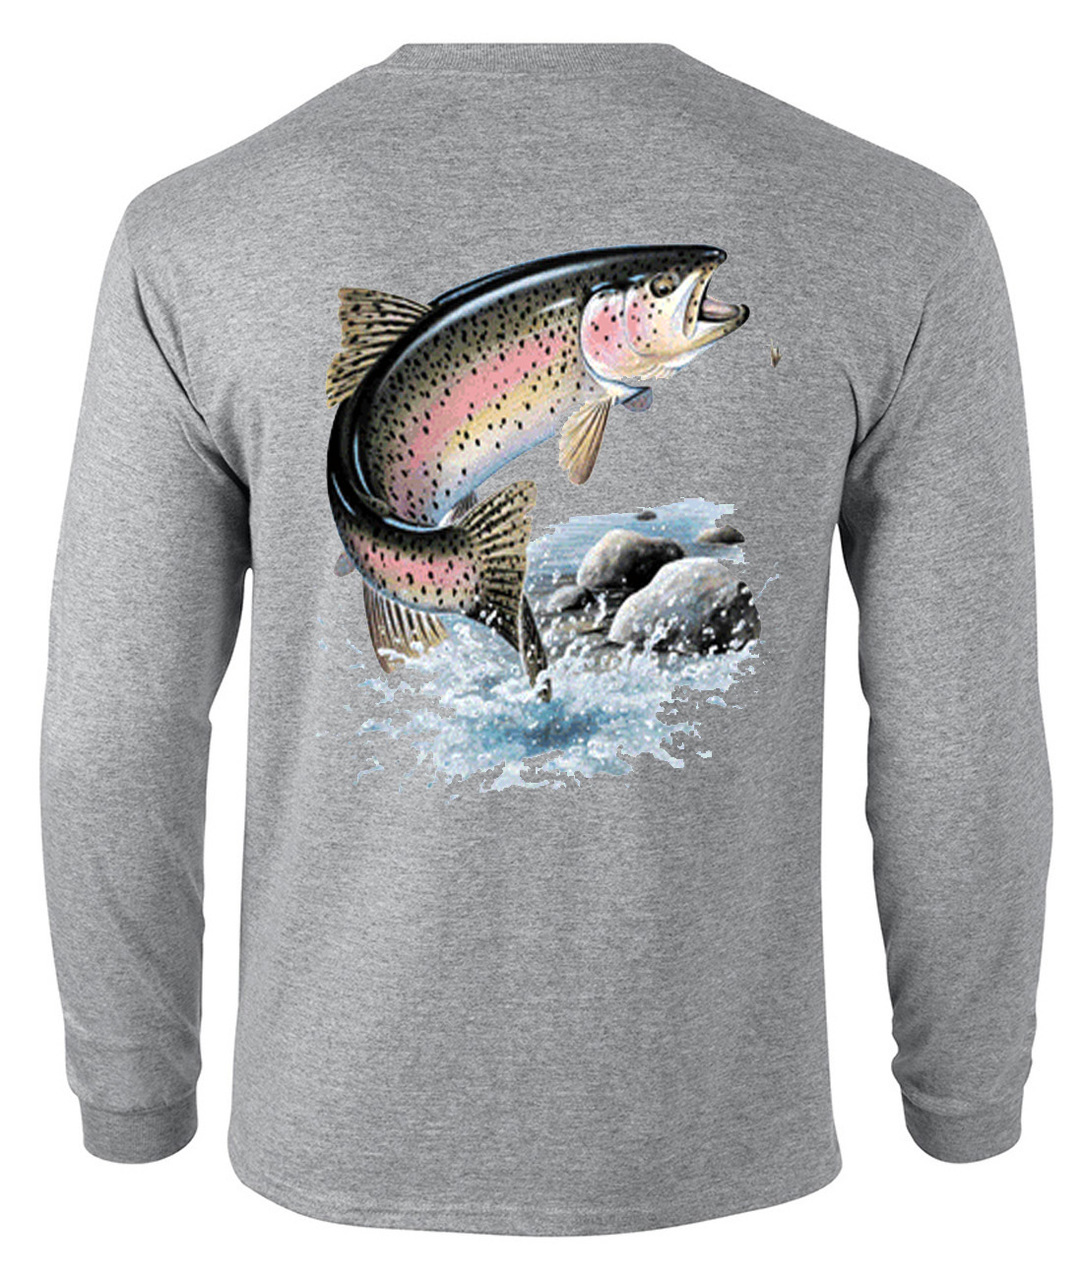 Rainbow Trout Fishing Men's Long Sleeve T-Shirt